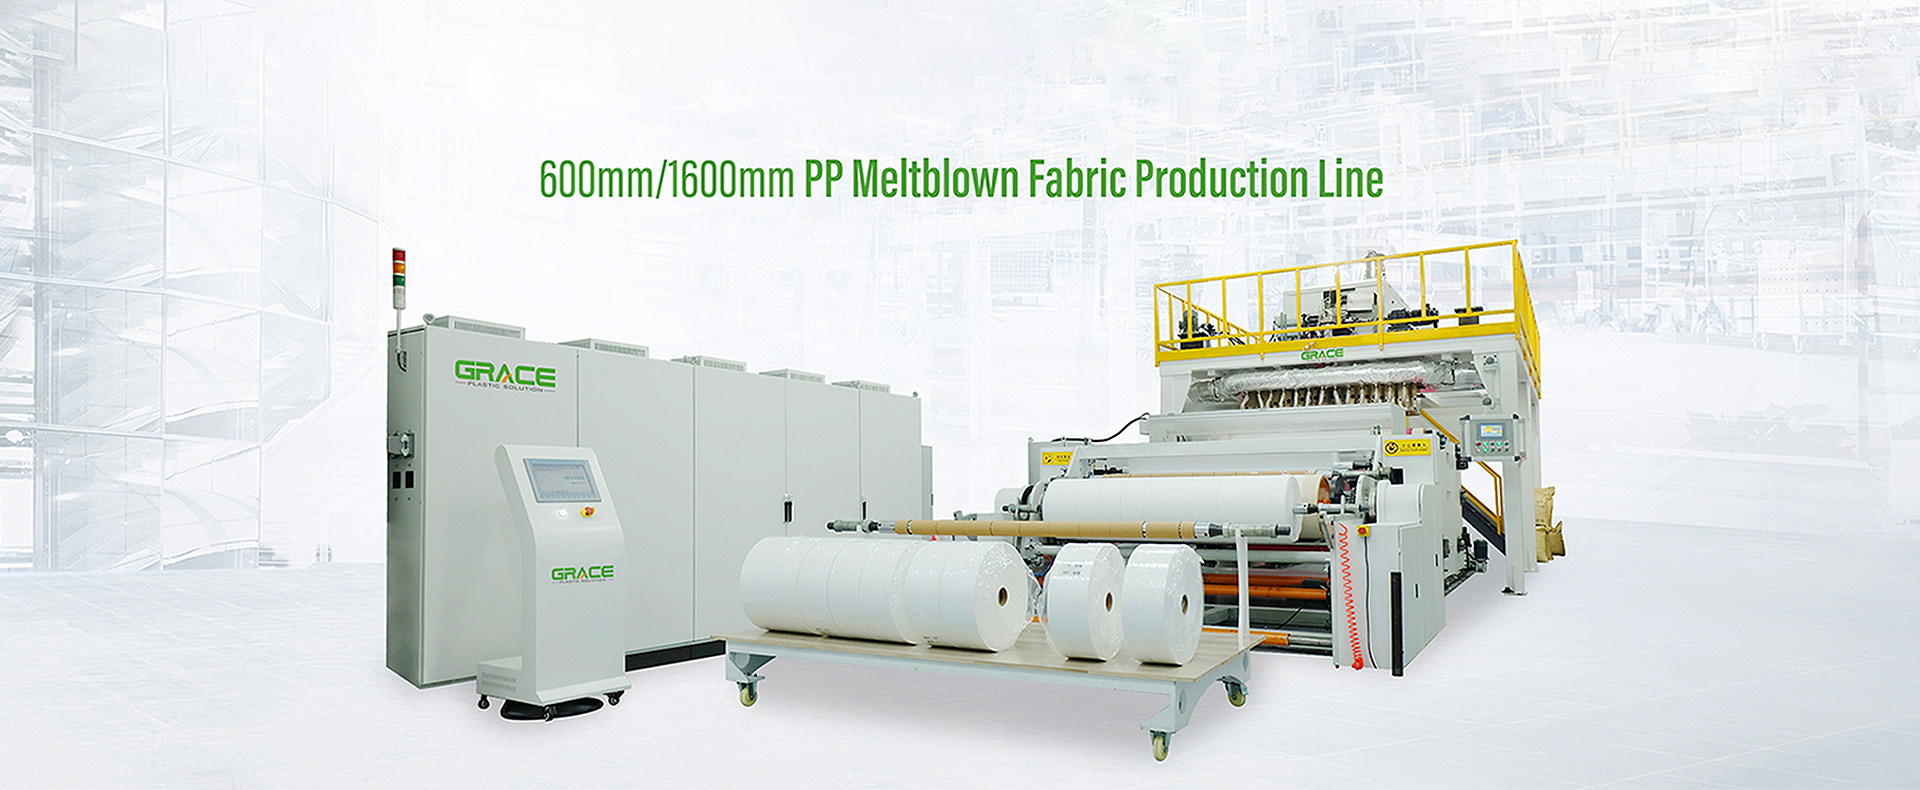 https://www.gracepm.com/pp-meltblown-fabric-production-line-product/